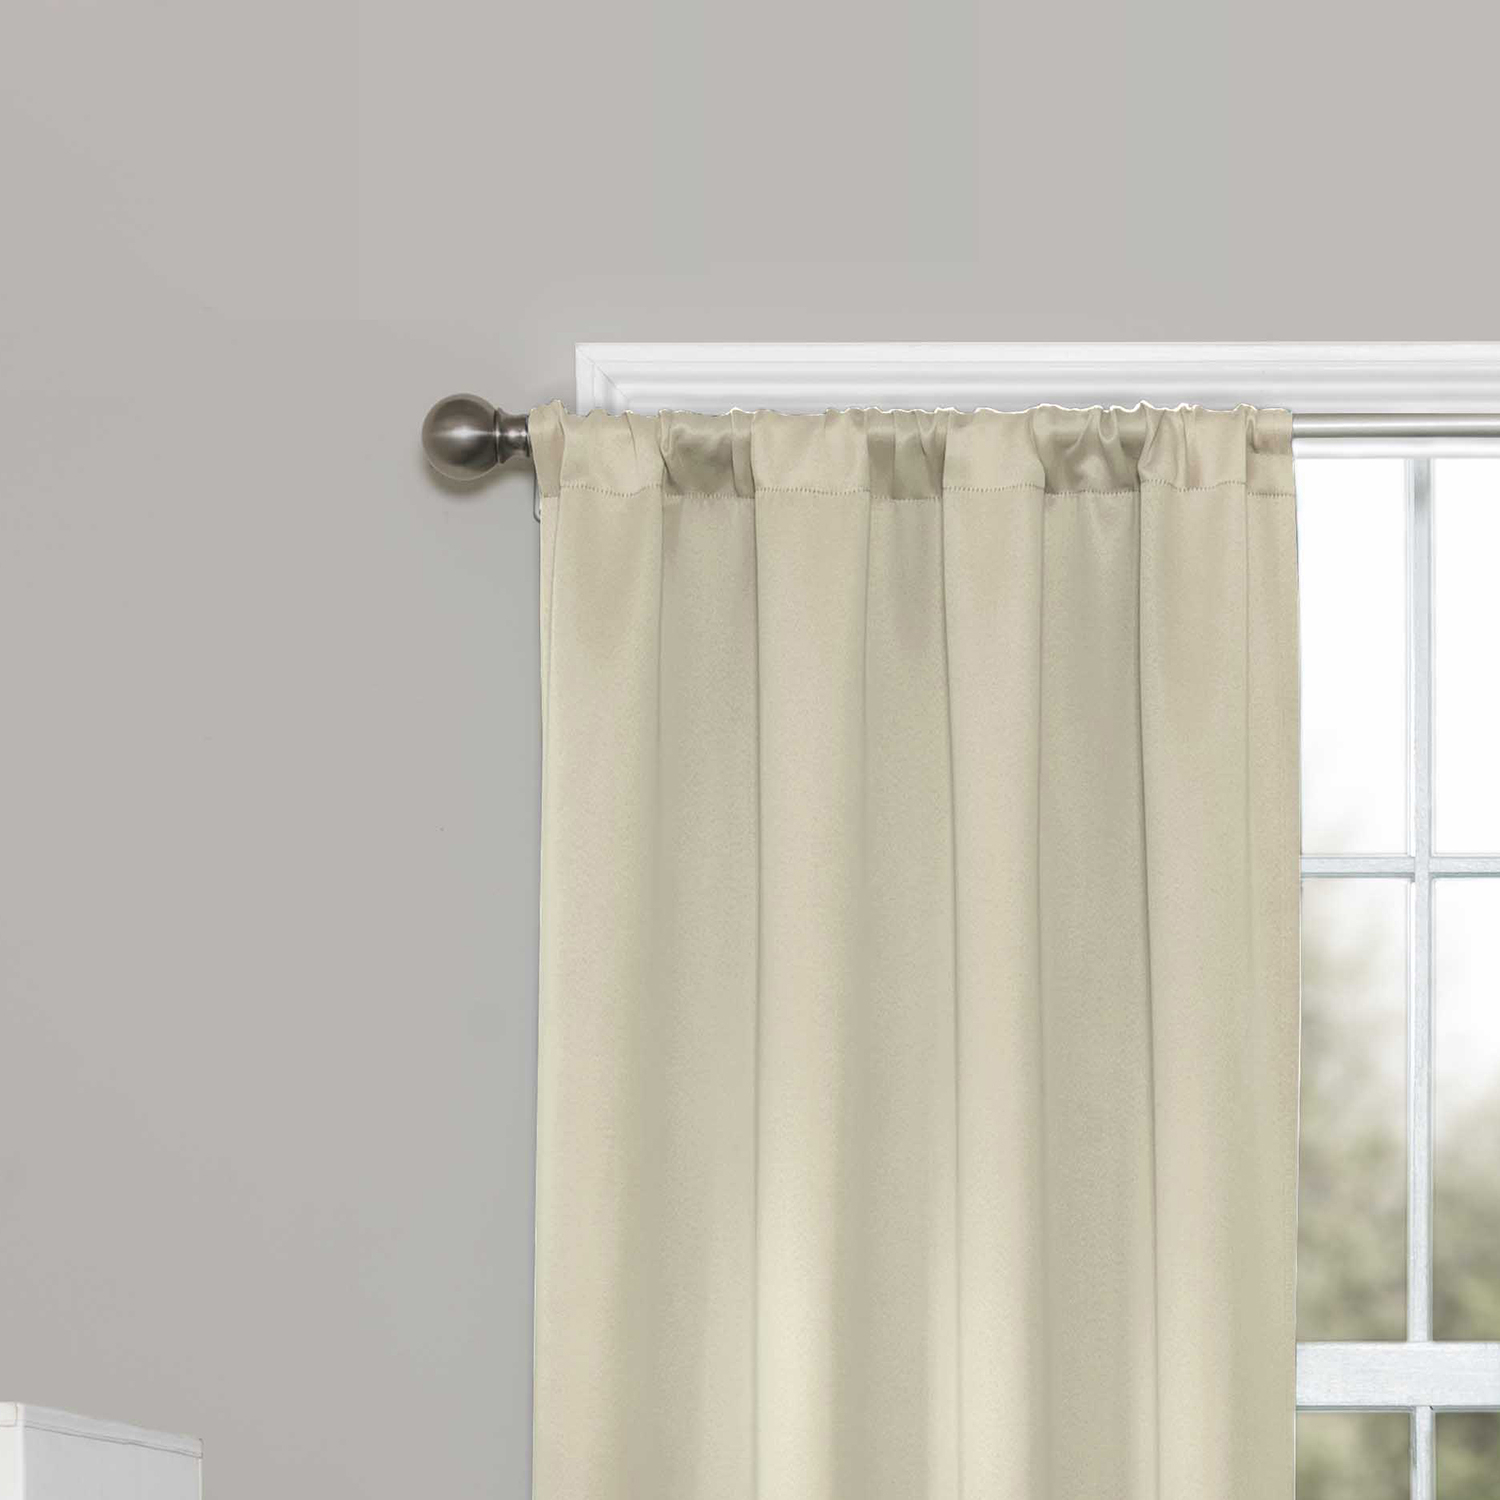 Eclipse Darrell Blackout Window Curtain Panel Regarding Eclipse Darrell Thermaweave Blackout Window Curtain Panels (View 6 of 20)